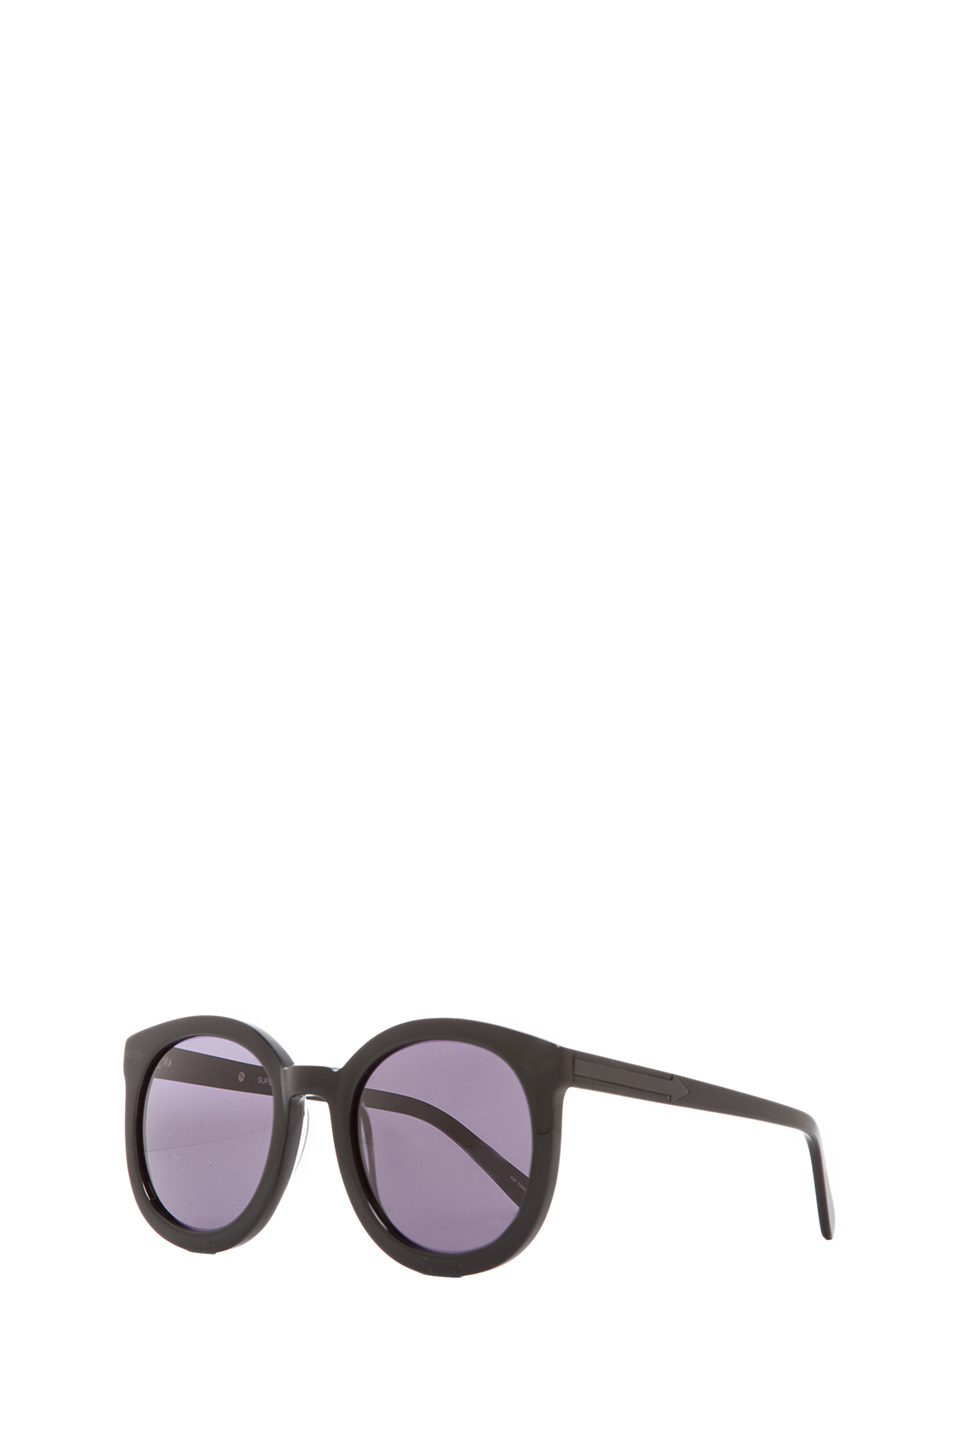 Karen Walker Super Duper Strength in Black | REVOLVE